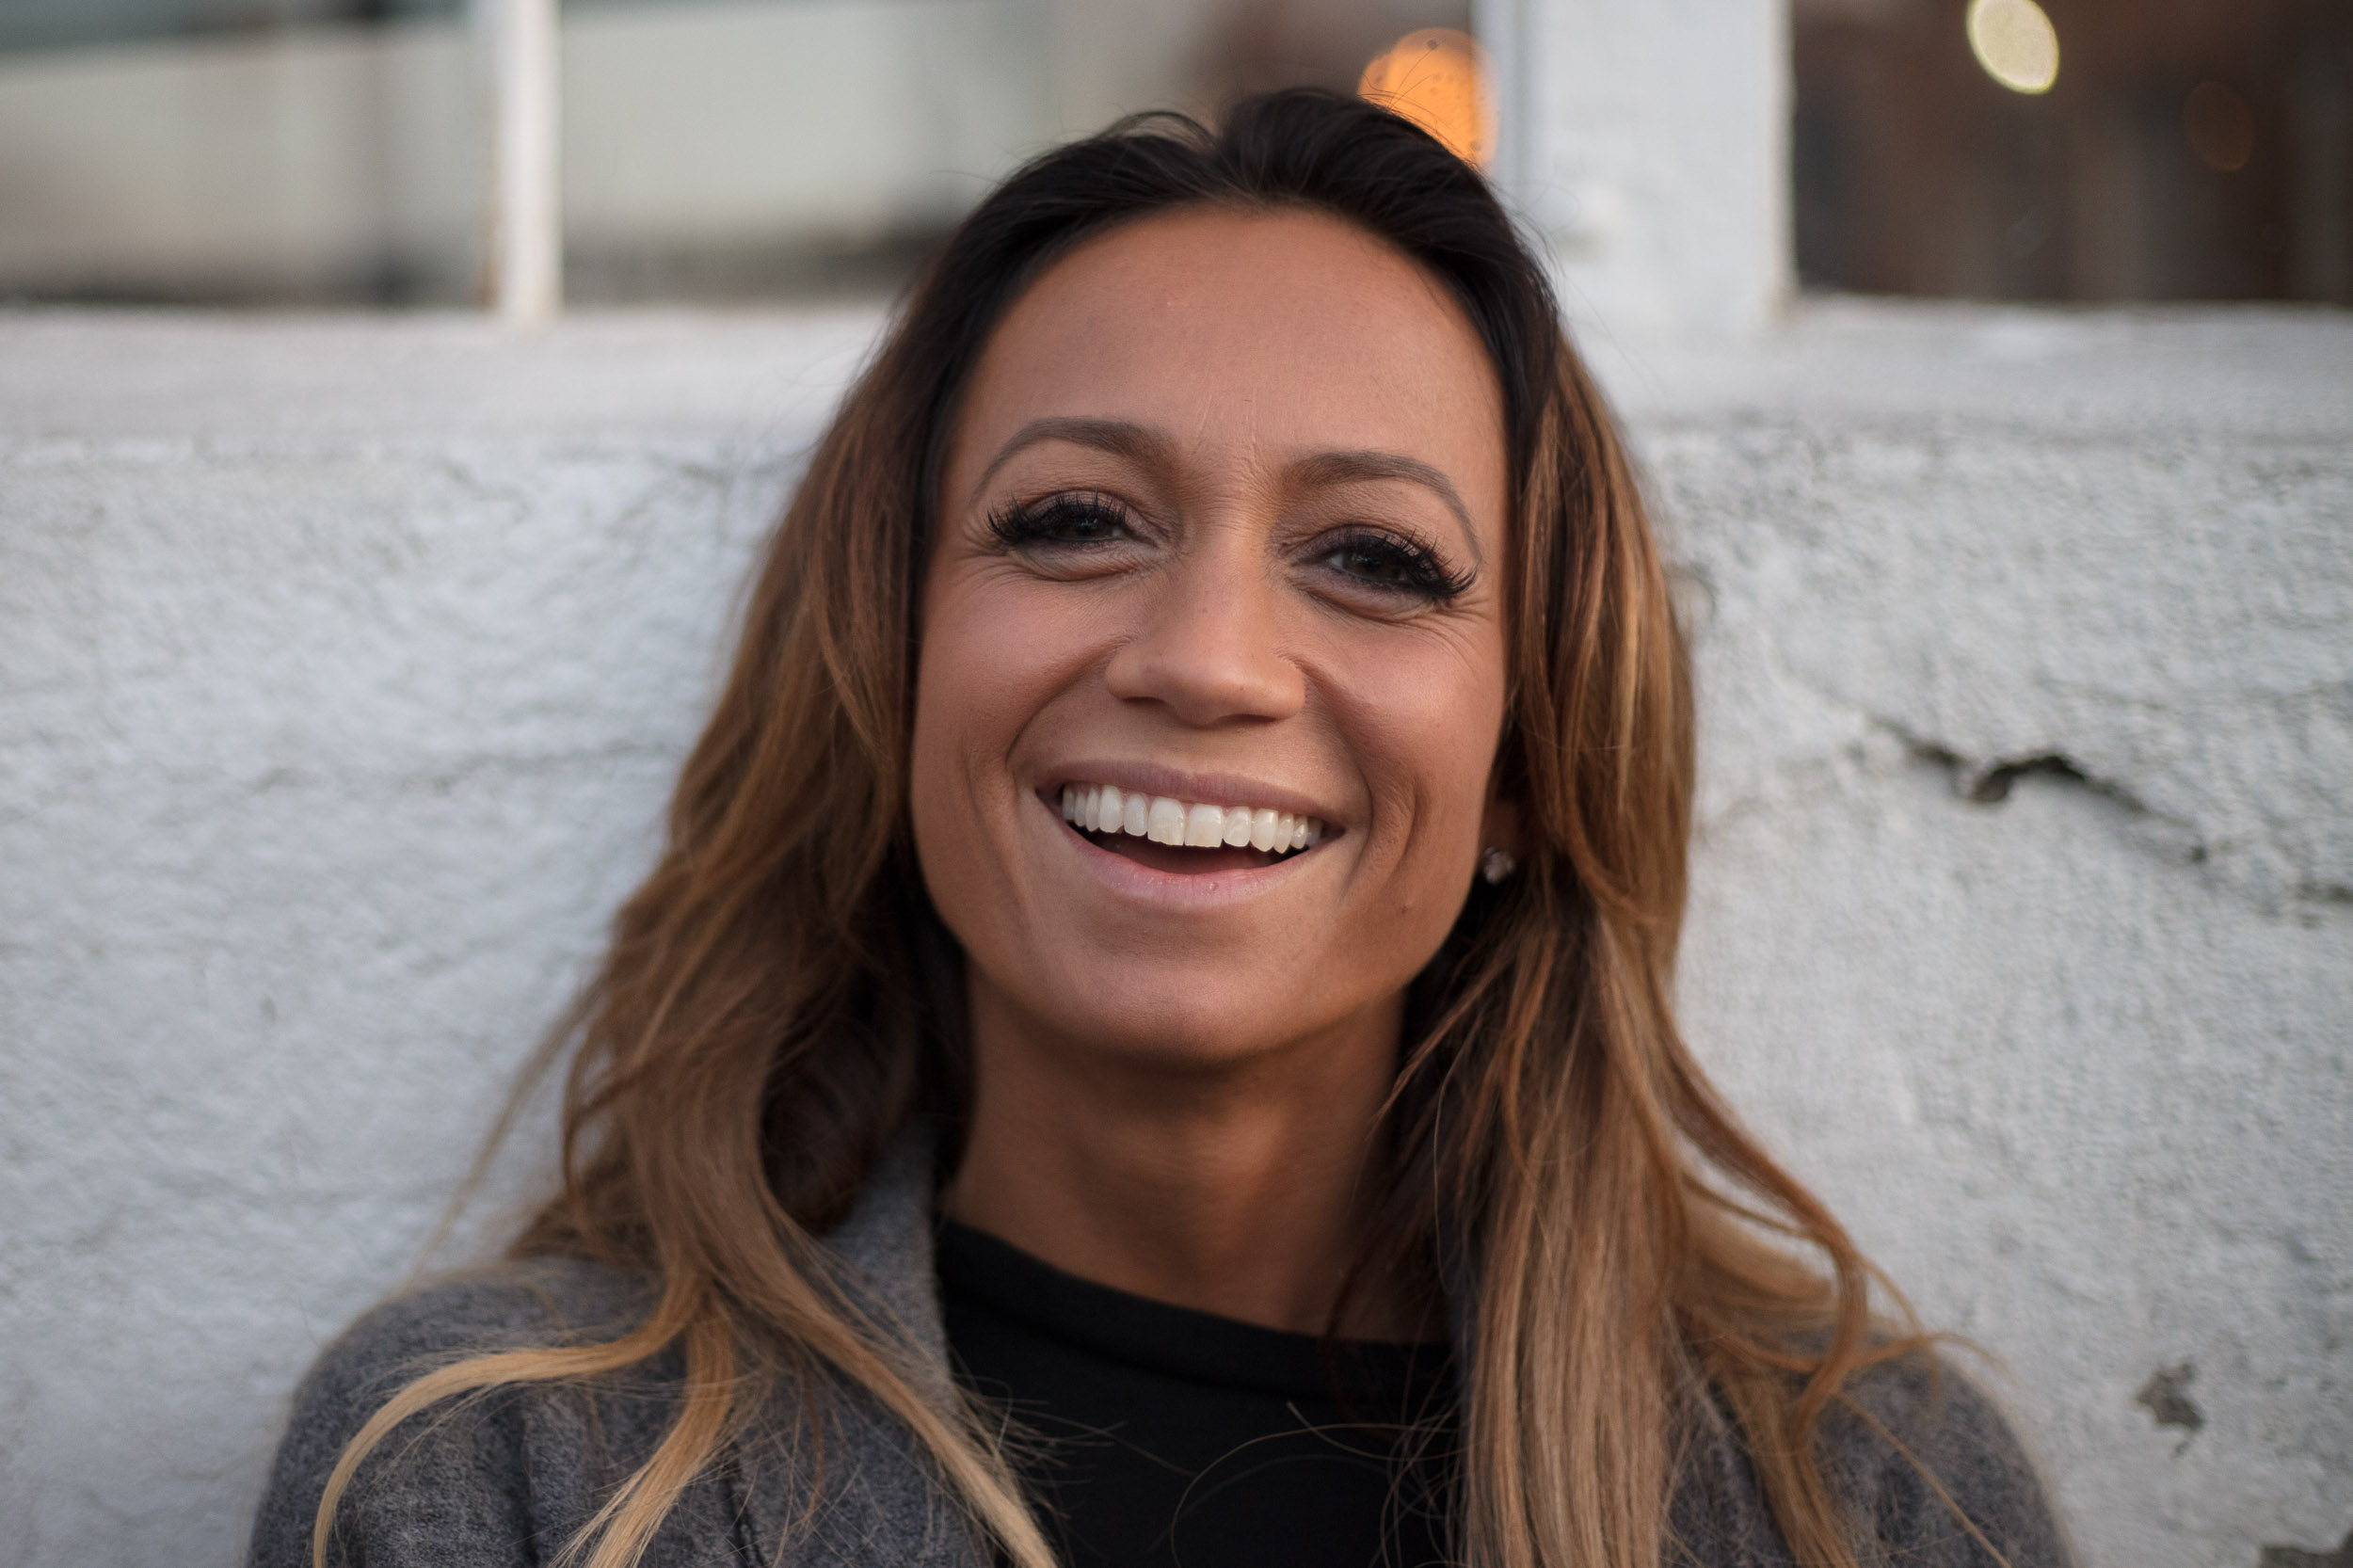 Kate Abdo, sports broadcaster